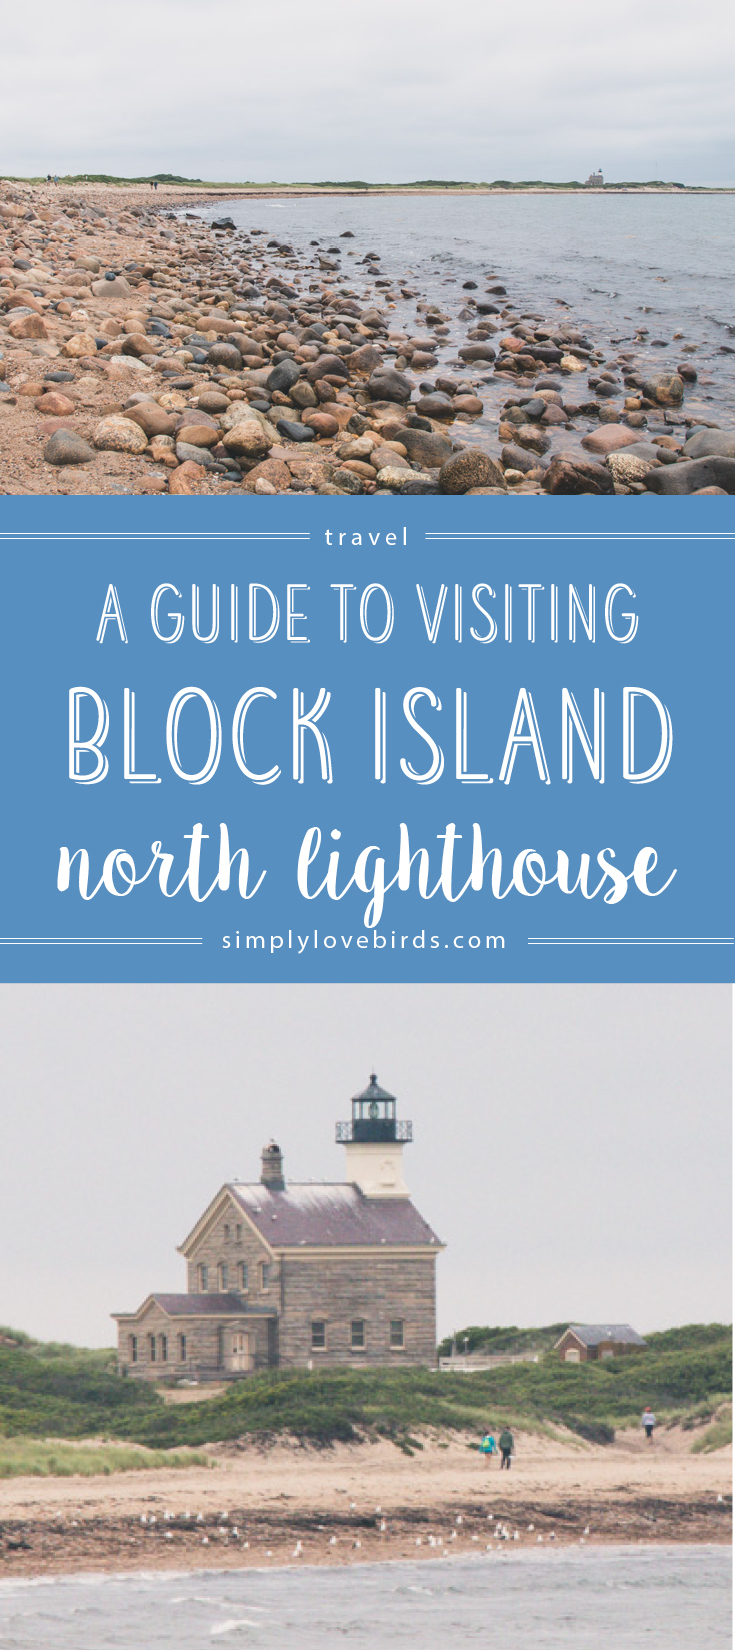 A Guide to Visiting Block Island's North Lighthouse at simplylovebirds.com